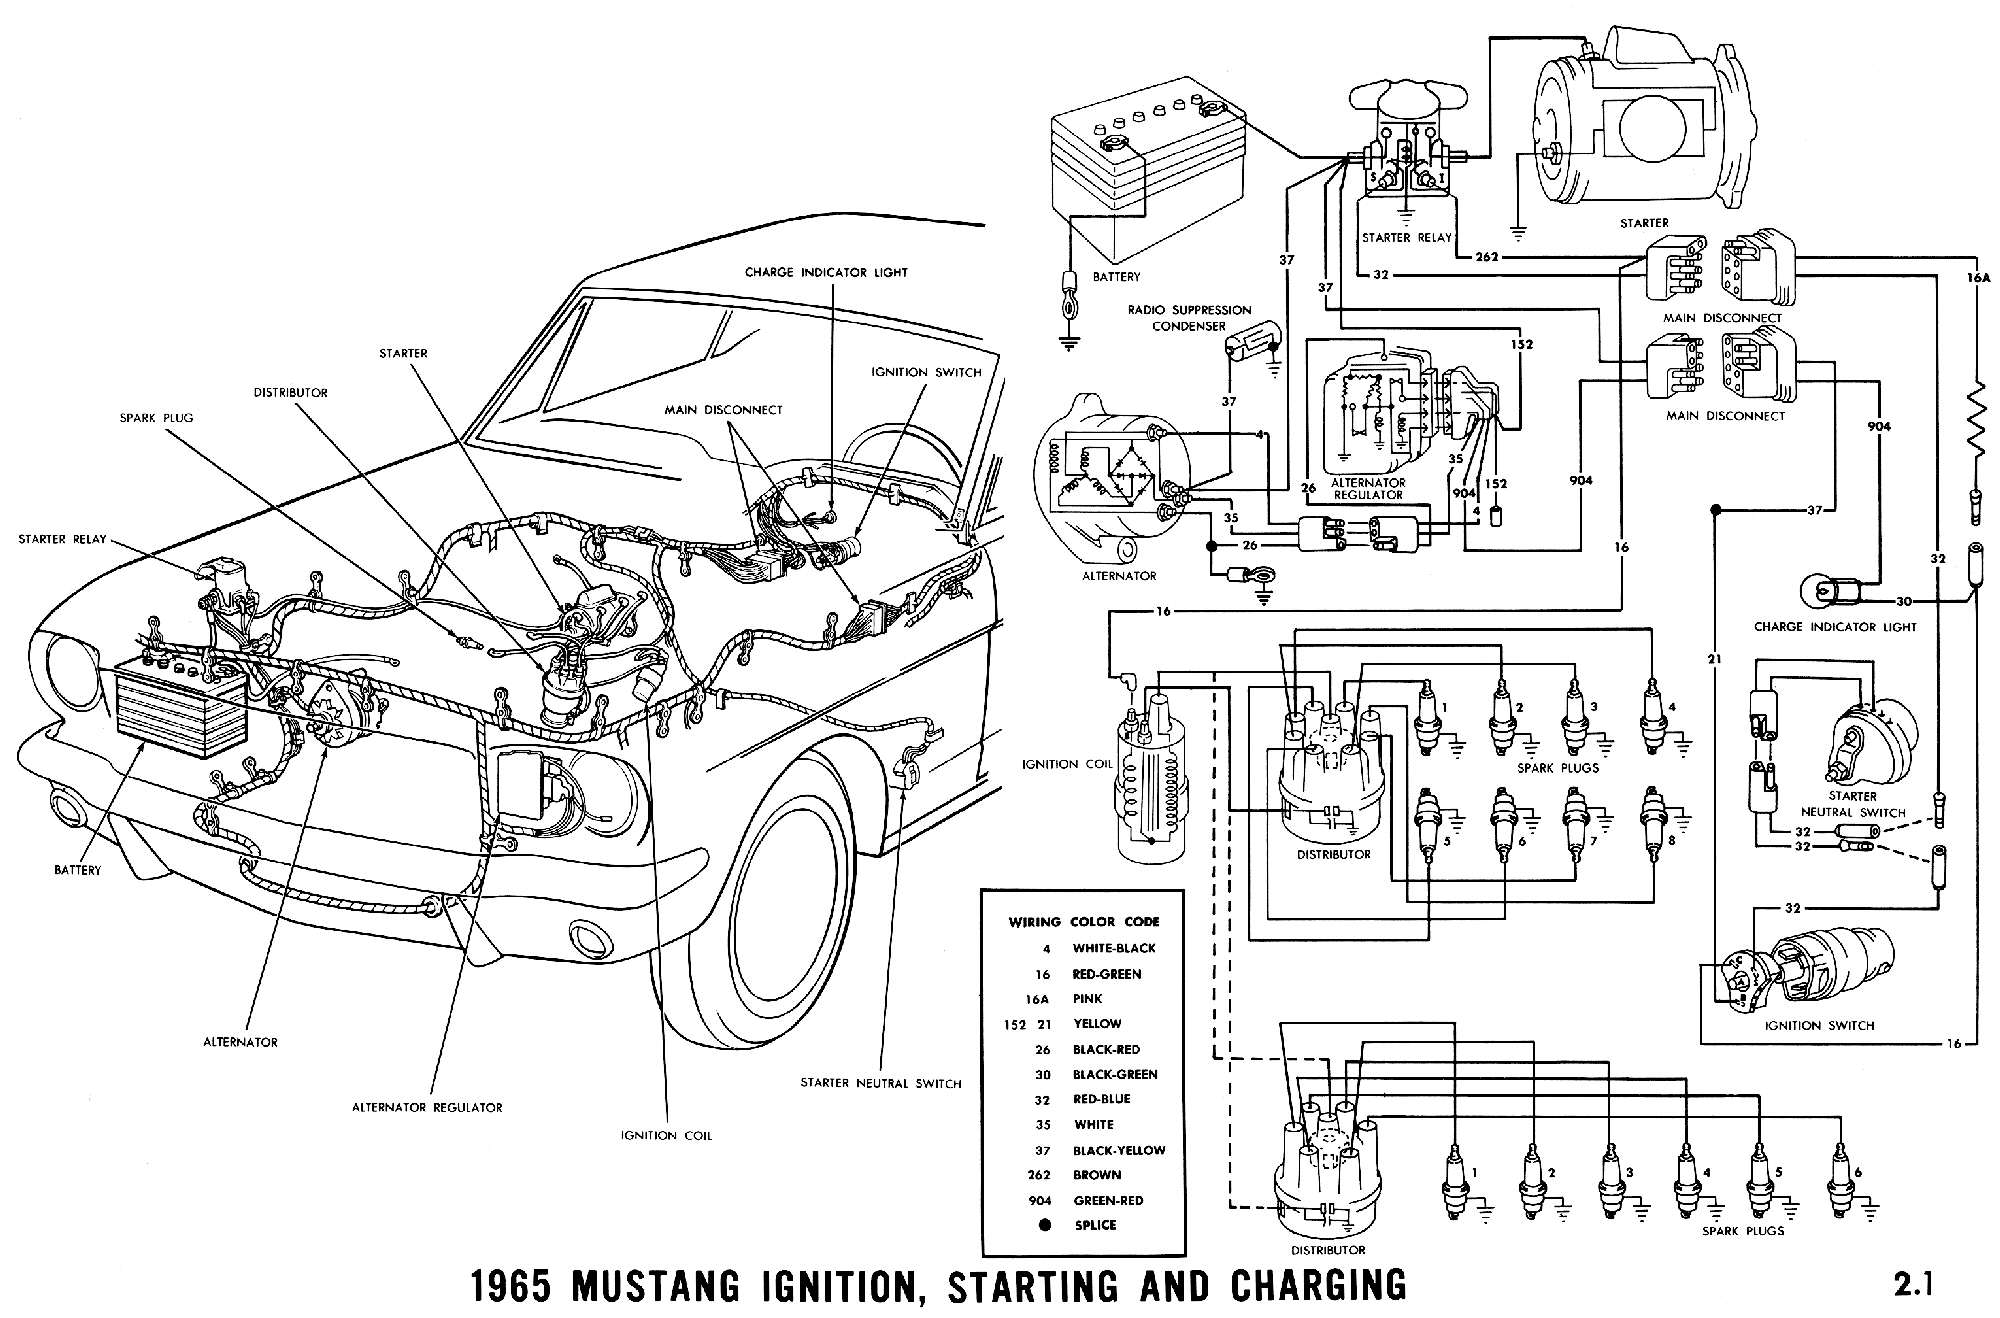 1965c 1965 mustang wiring diagrams average joe restoration 71 mustang wiring diagram at bayanpartner.co